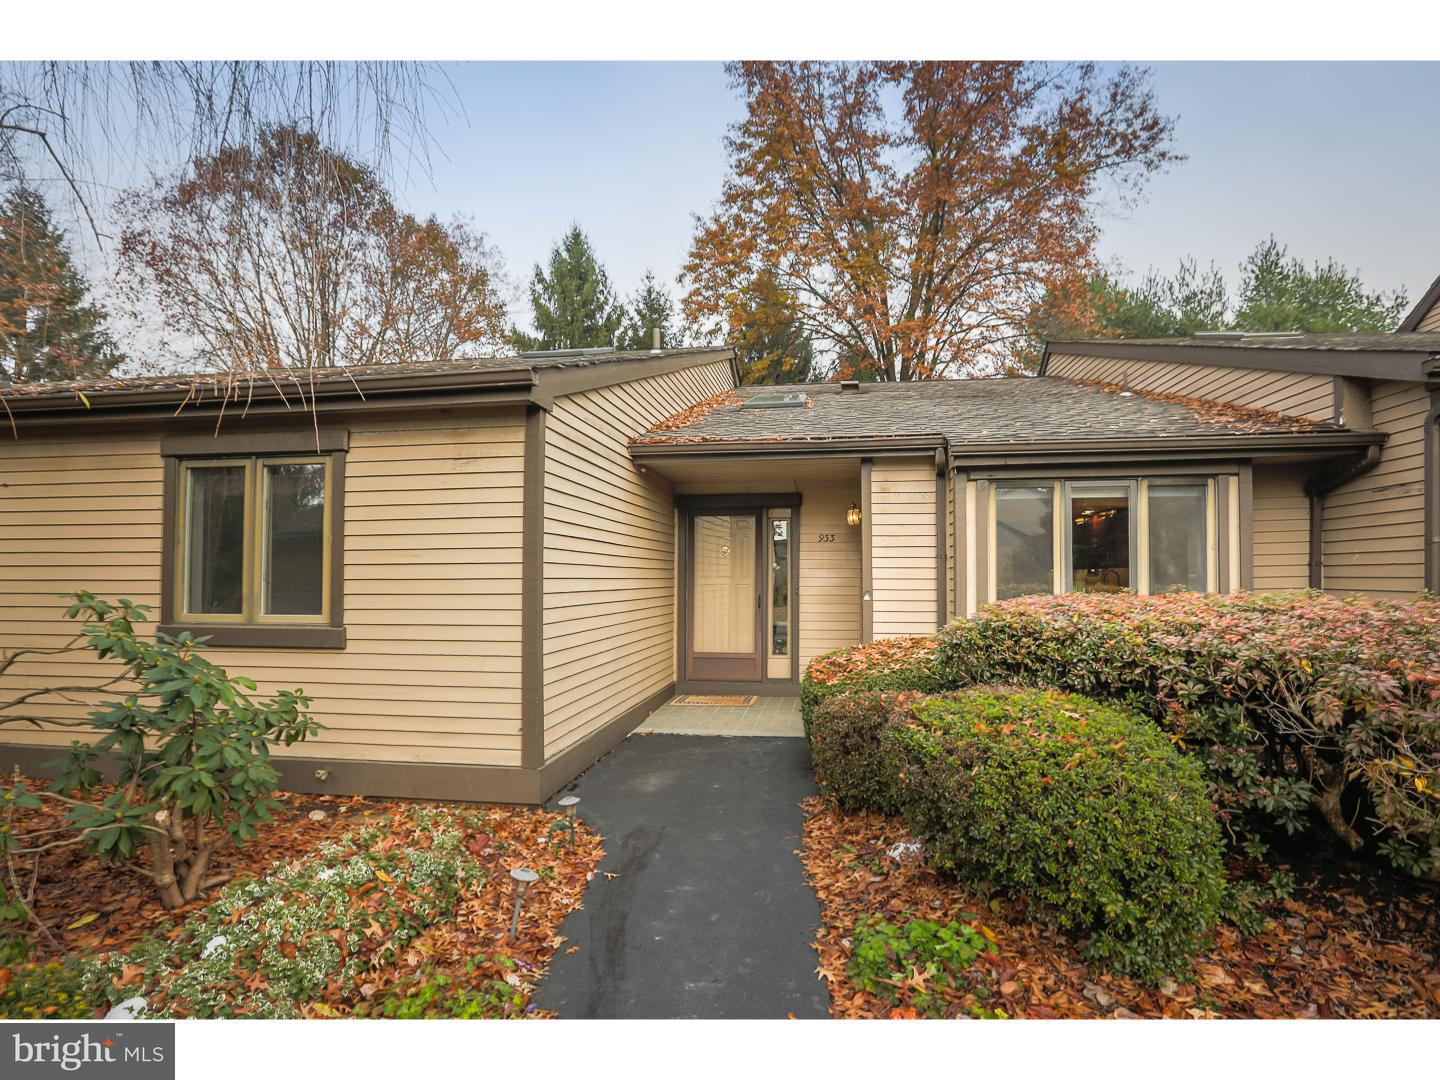 933 Jefferson Way West Chester, PA 19380